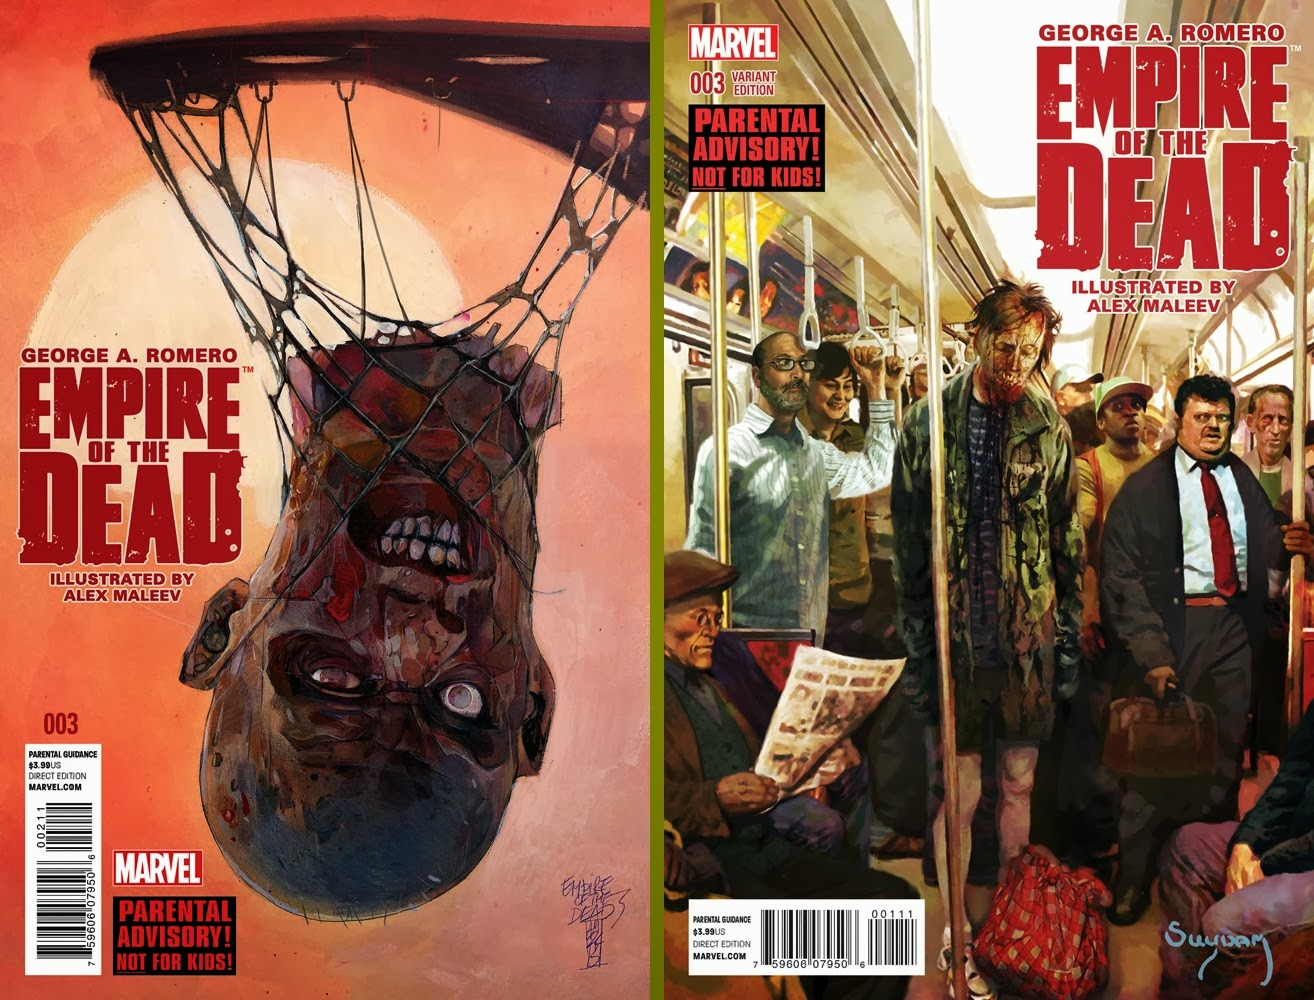 Empire of the Dead (cover+variant)